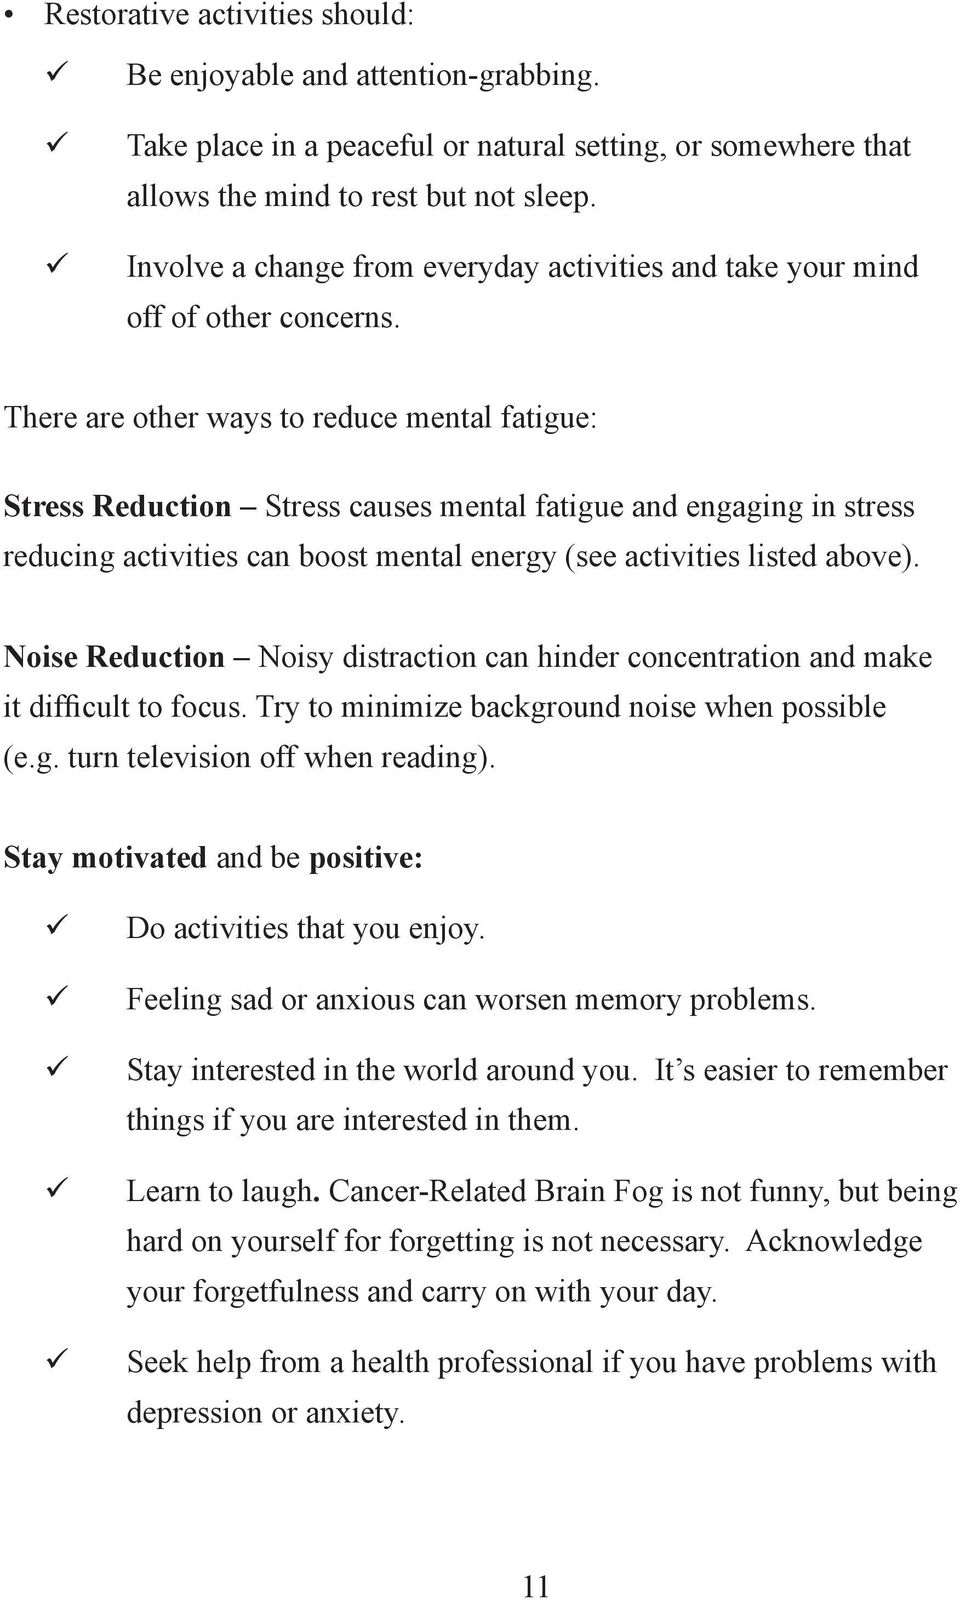 There are other ways to reduce mental fatigue: Stress Reduction Stress causes mental fatigue and engaging in stress reducing activities can boost mental energy (see activities listed above).